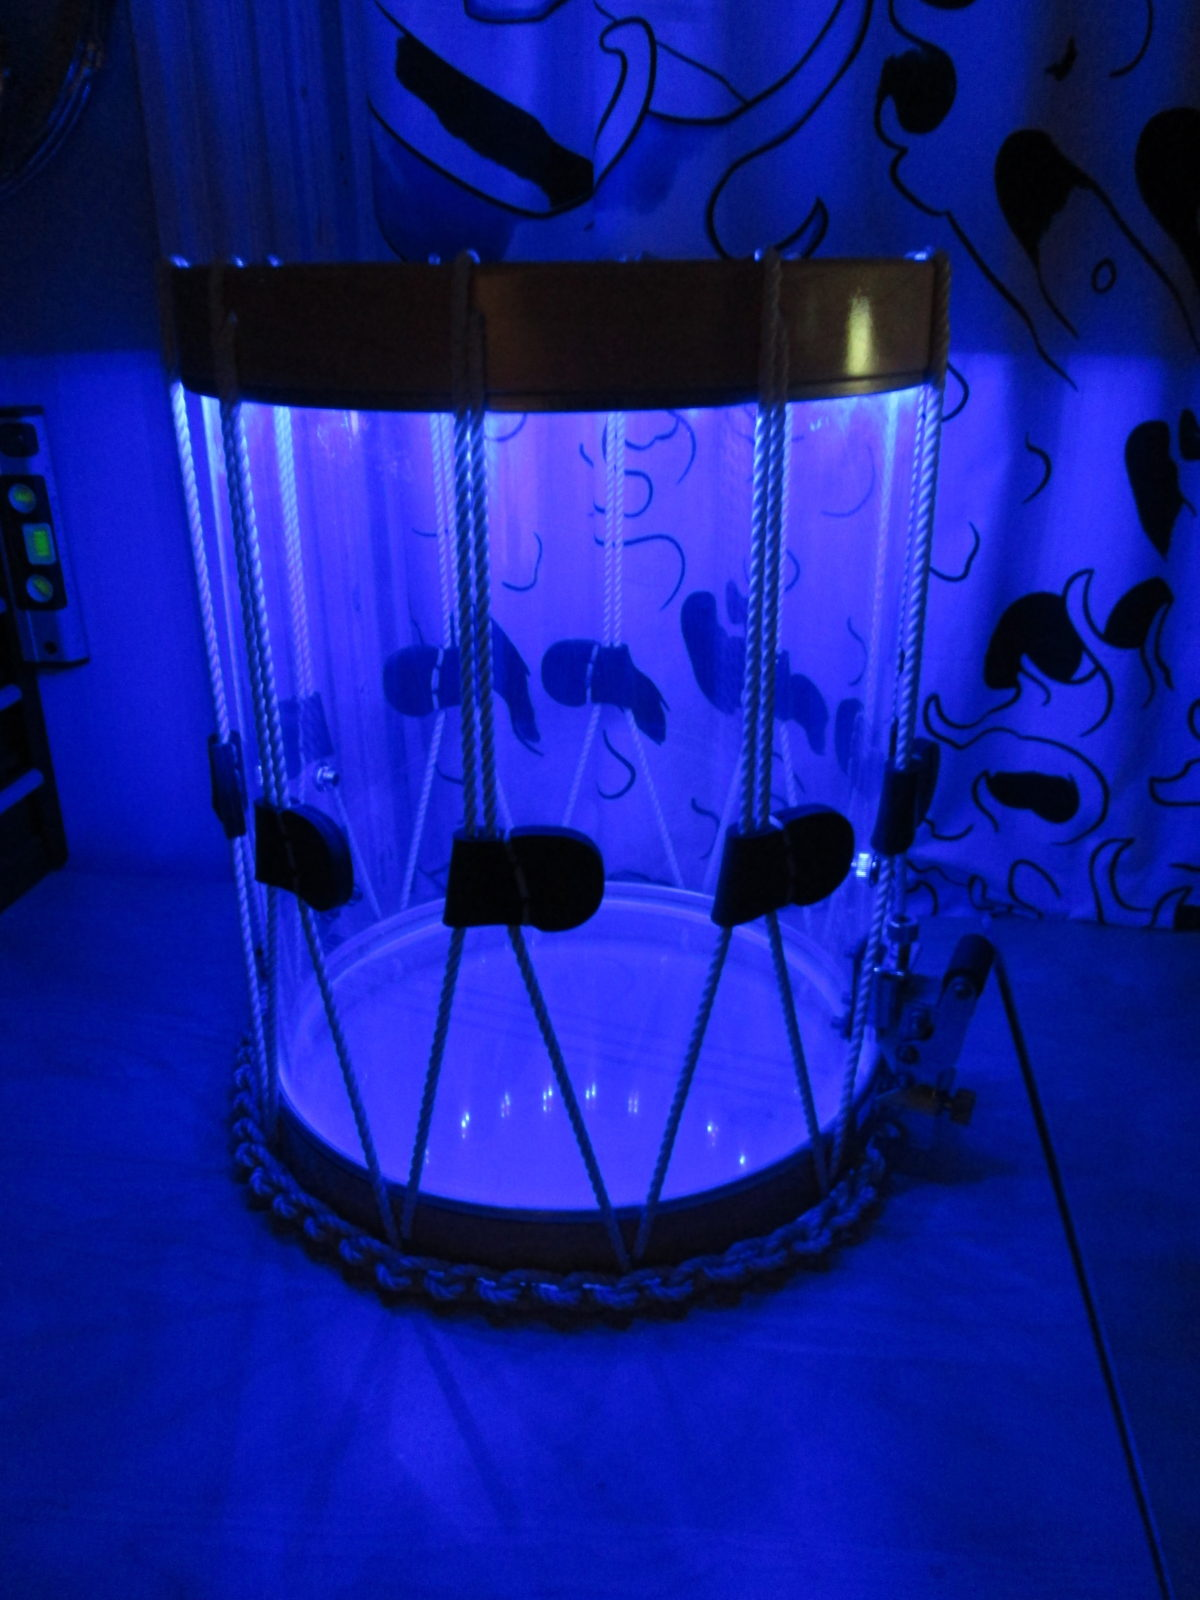 LED-imbued acrylic rope tension drum